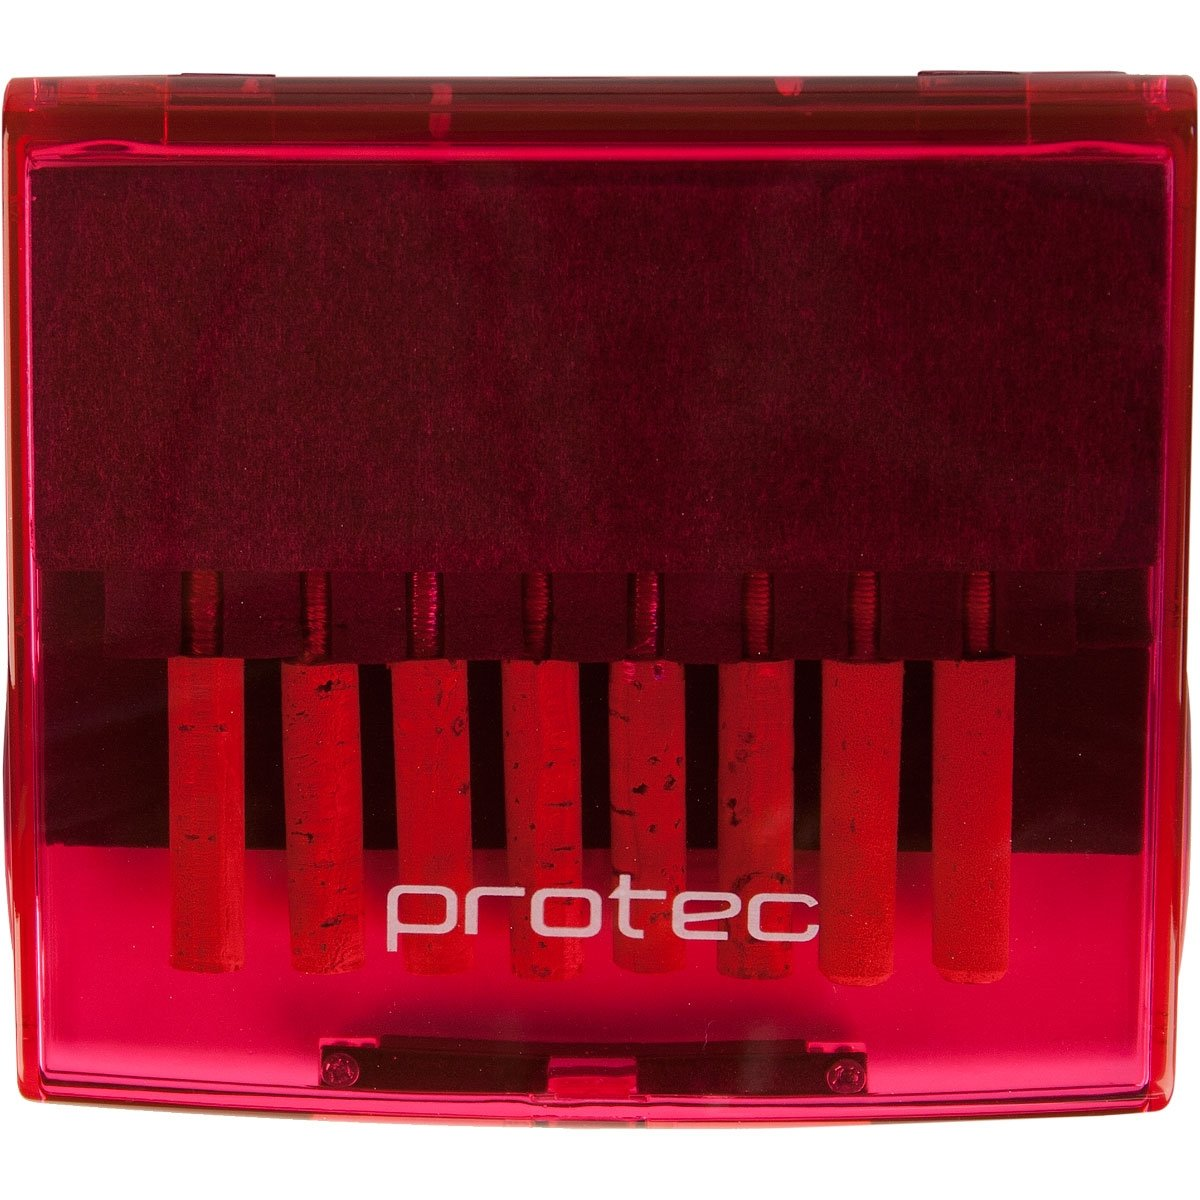 Protec - Oboe/English Horn Reed Case-Accessories-Protec-Transparent Cherry-Music Elements